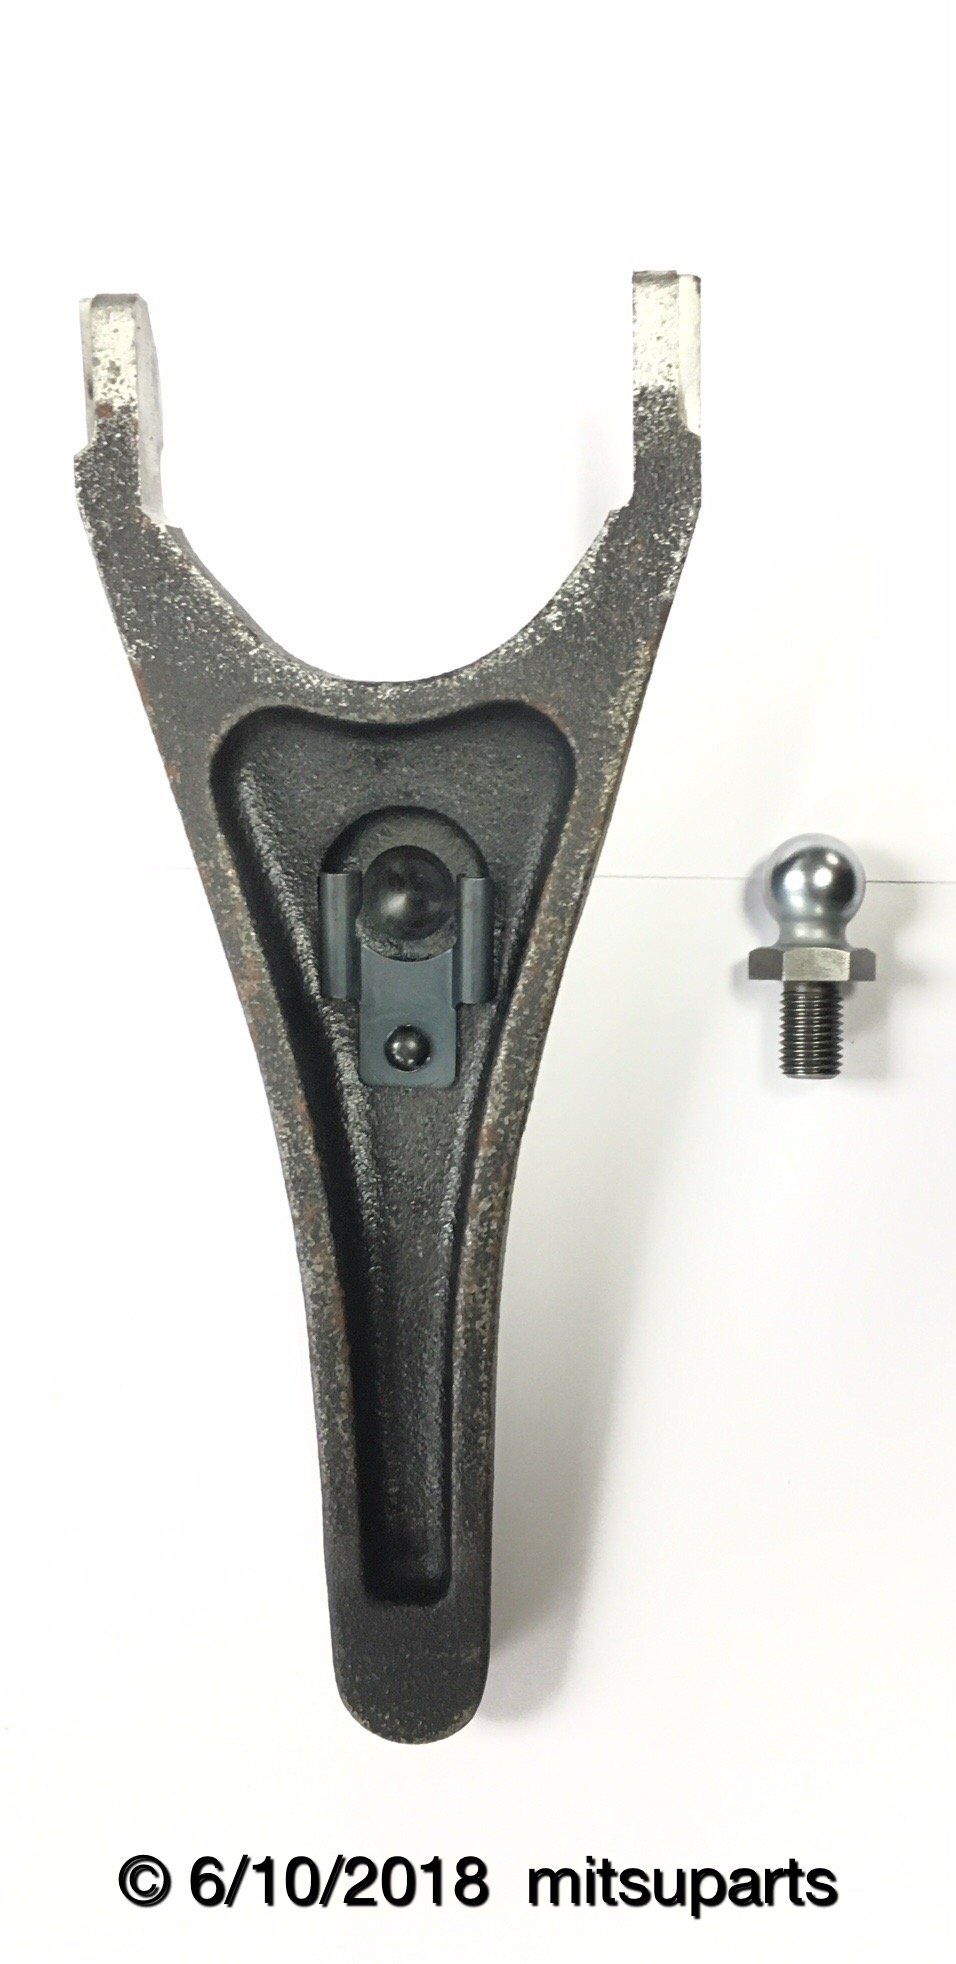 Genuine Mitsubishi OEM CLUTCH RELEASE ARM FORK & FULCRUM PIVOT BALL 3000GT VR-4 Also Compatible with Dodge STEALTH TURBO 1991 1992 1993 1994 1995 1996 1997 1998 1999